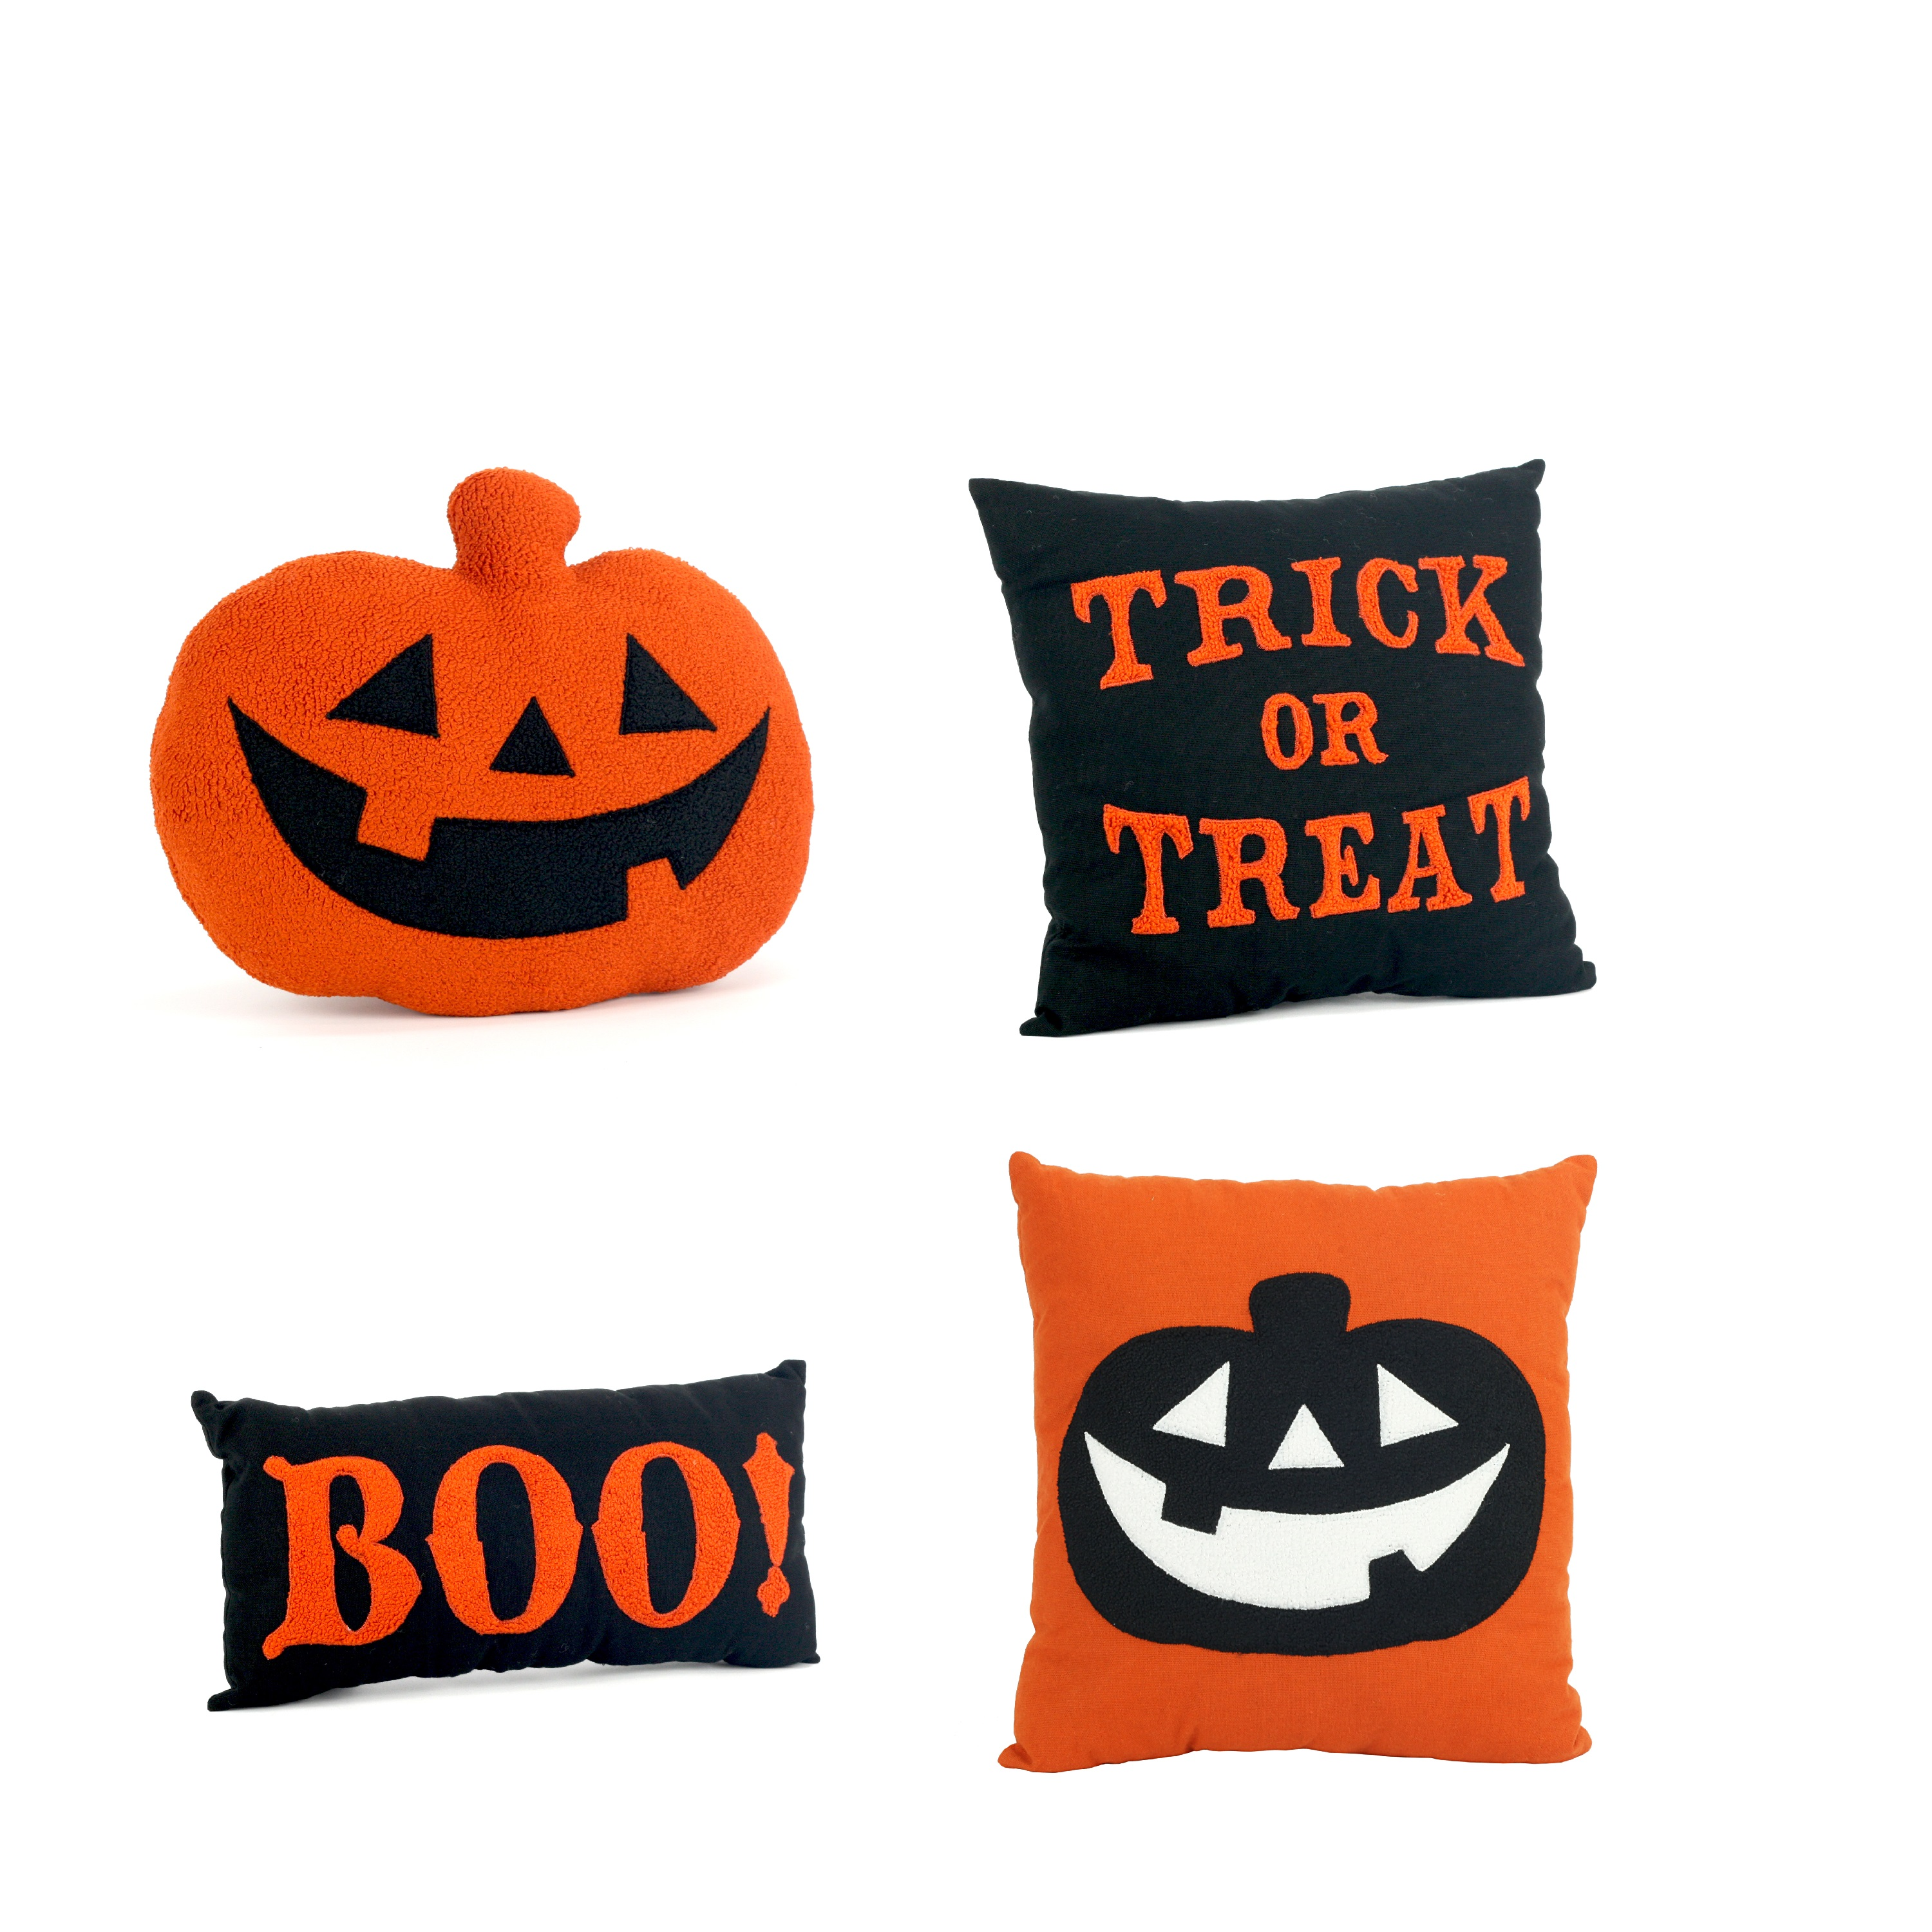 way to celebrate halloween pillow style may vary